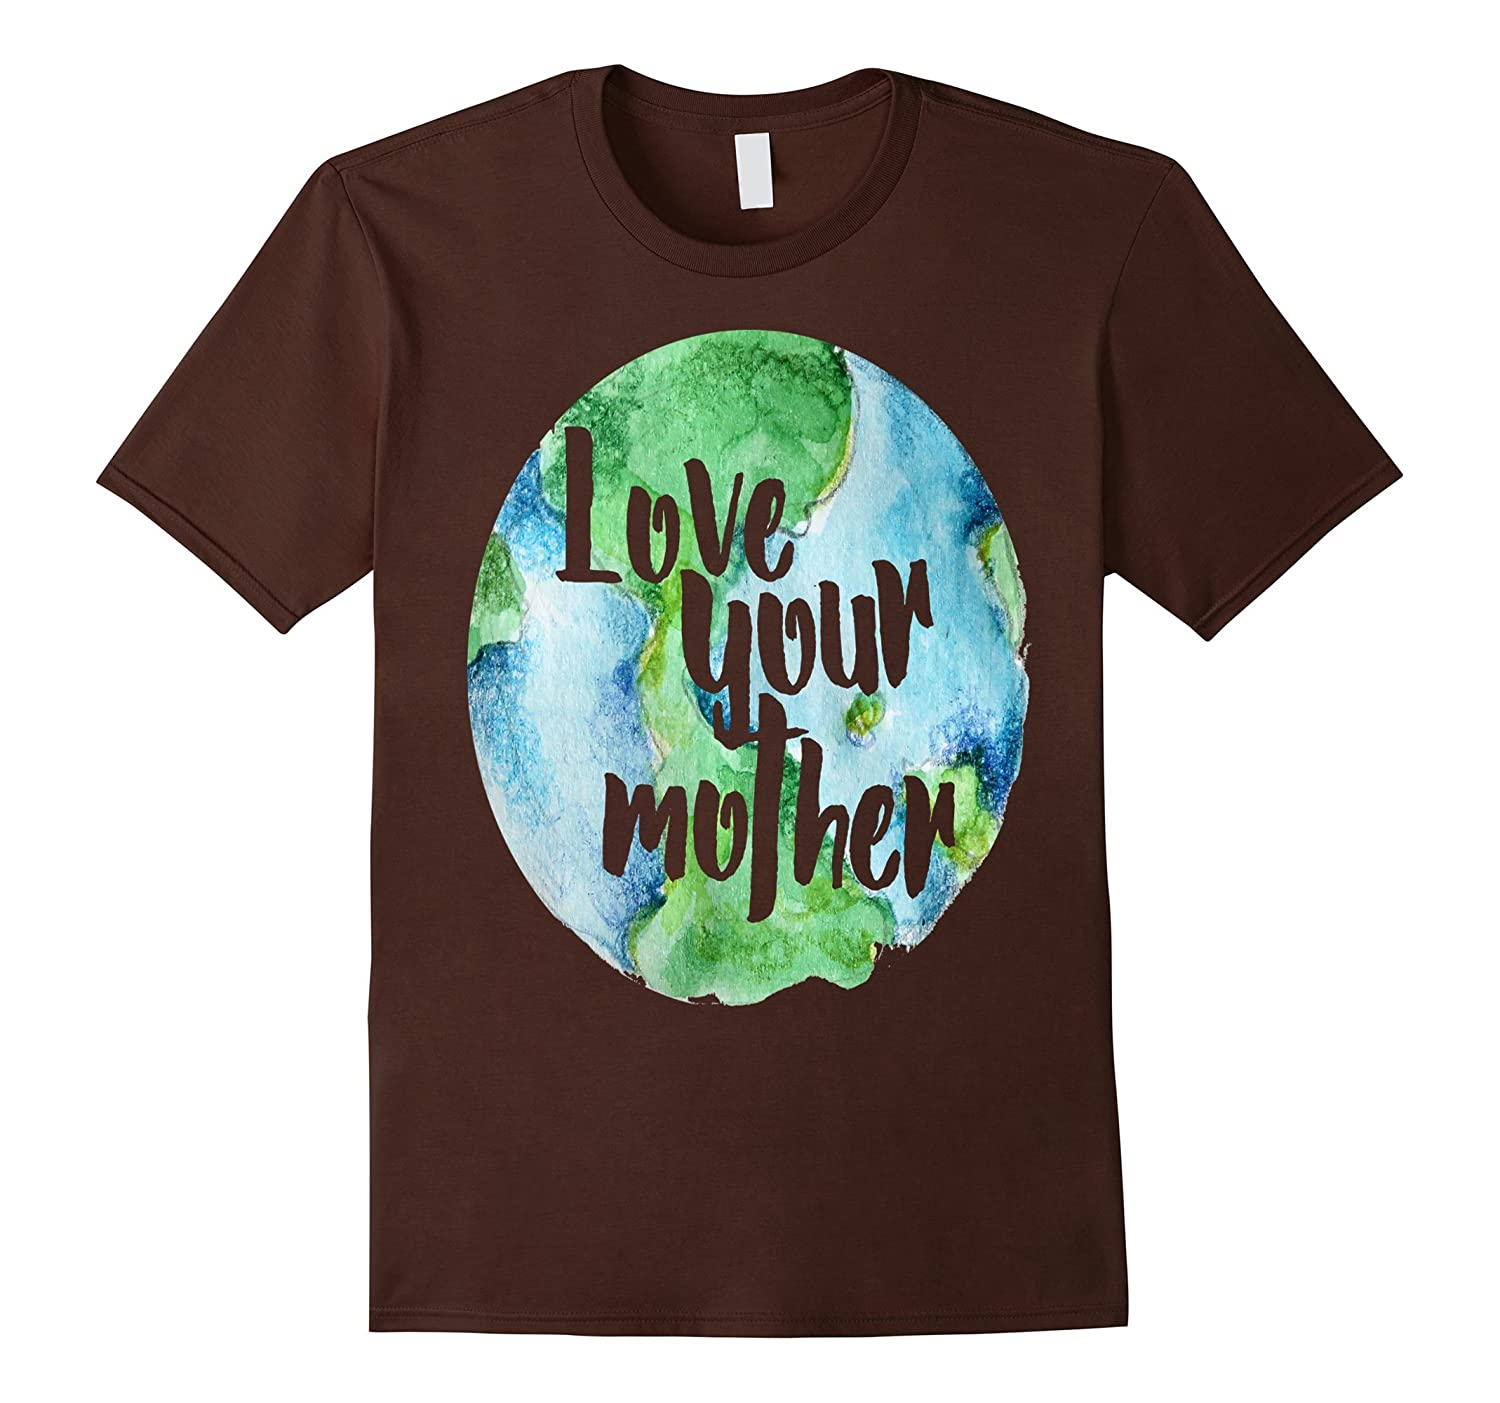 Love your Earth mother day T-shirt design tee idea gift-TD